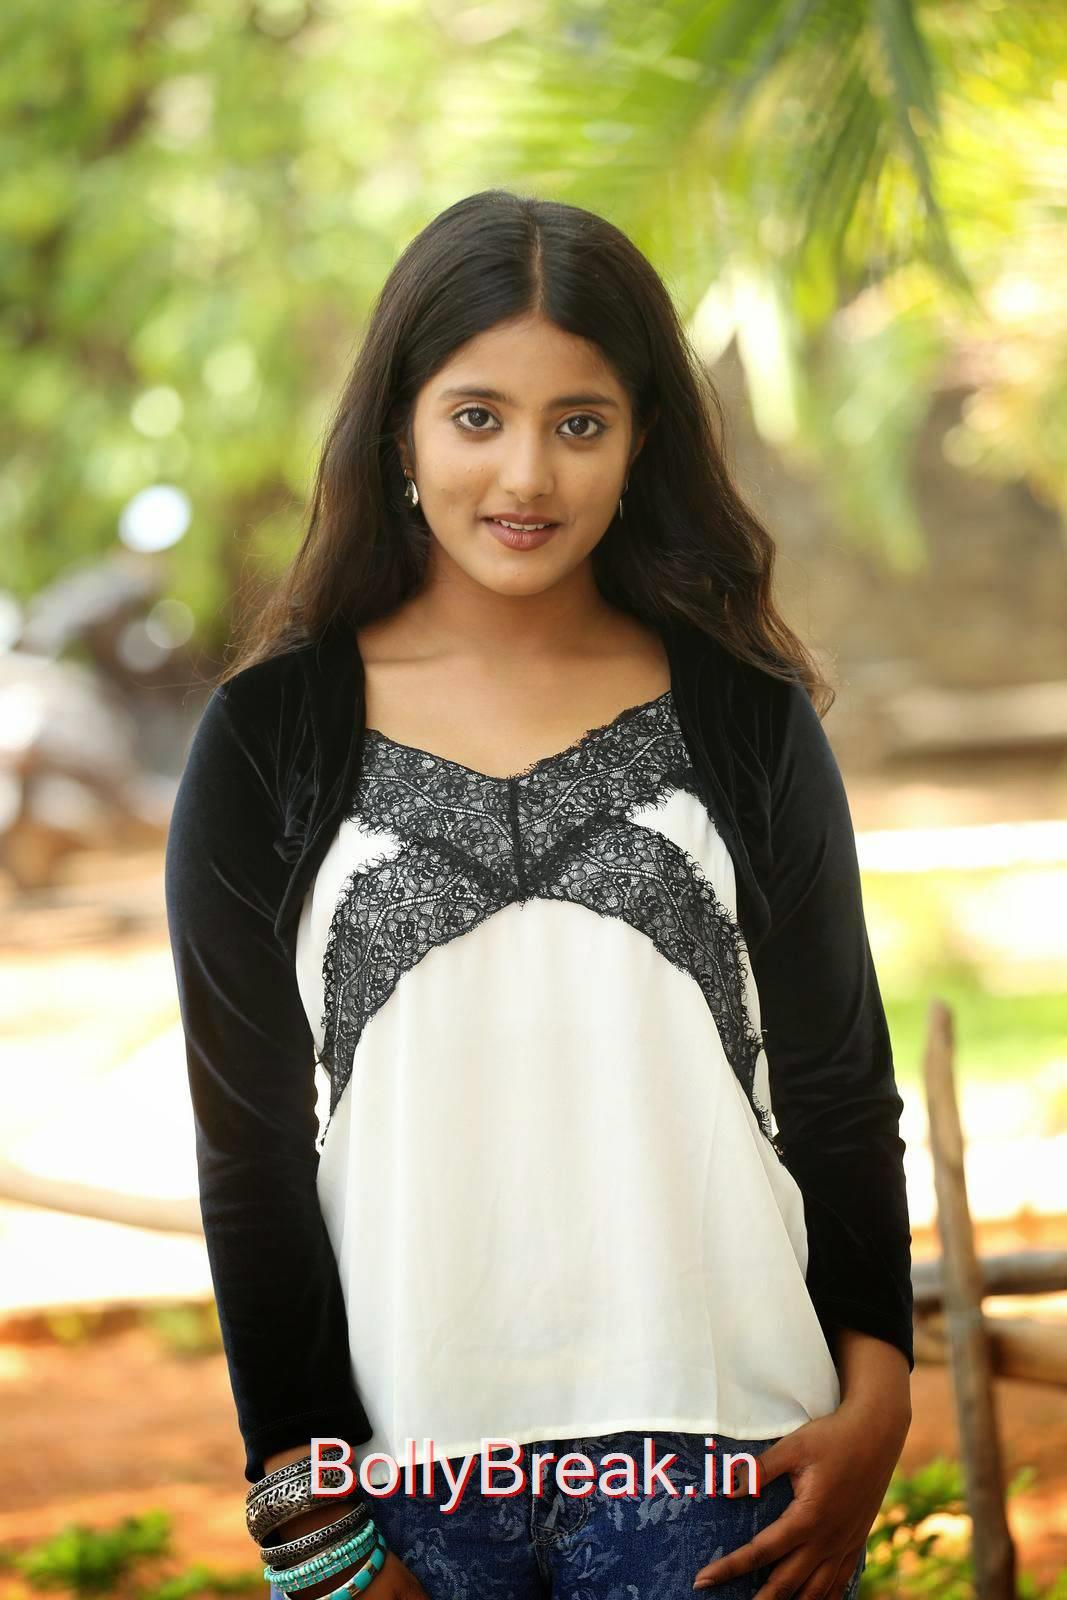 Ulka Gupta Photoshoot Stills, Cute, Sweet, Innocent Indian Actress Ulka Gupta hot HD Photo Gallery Pics